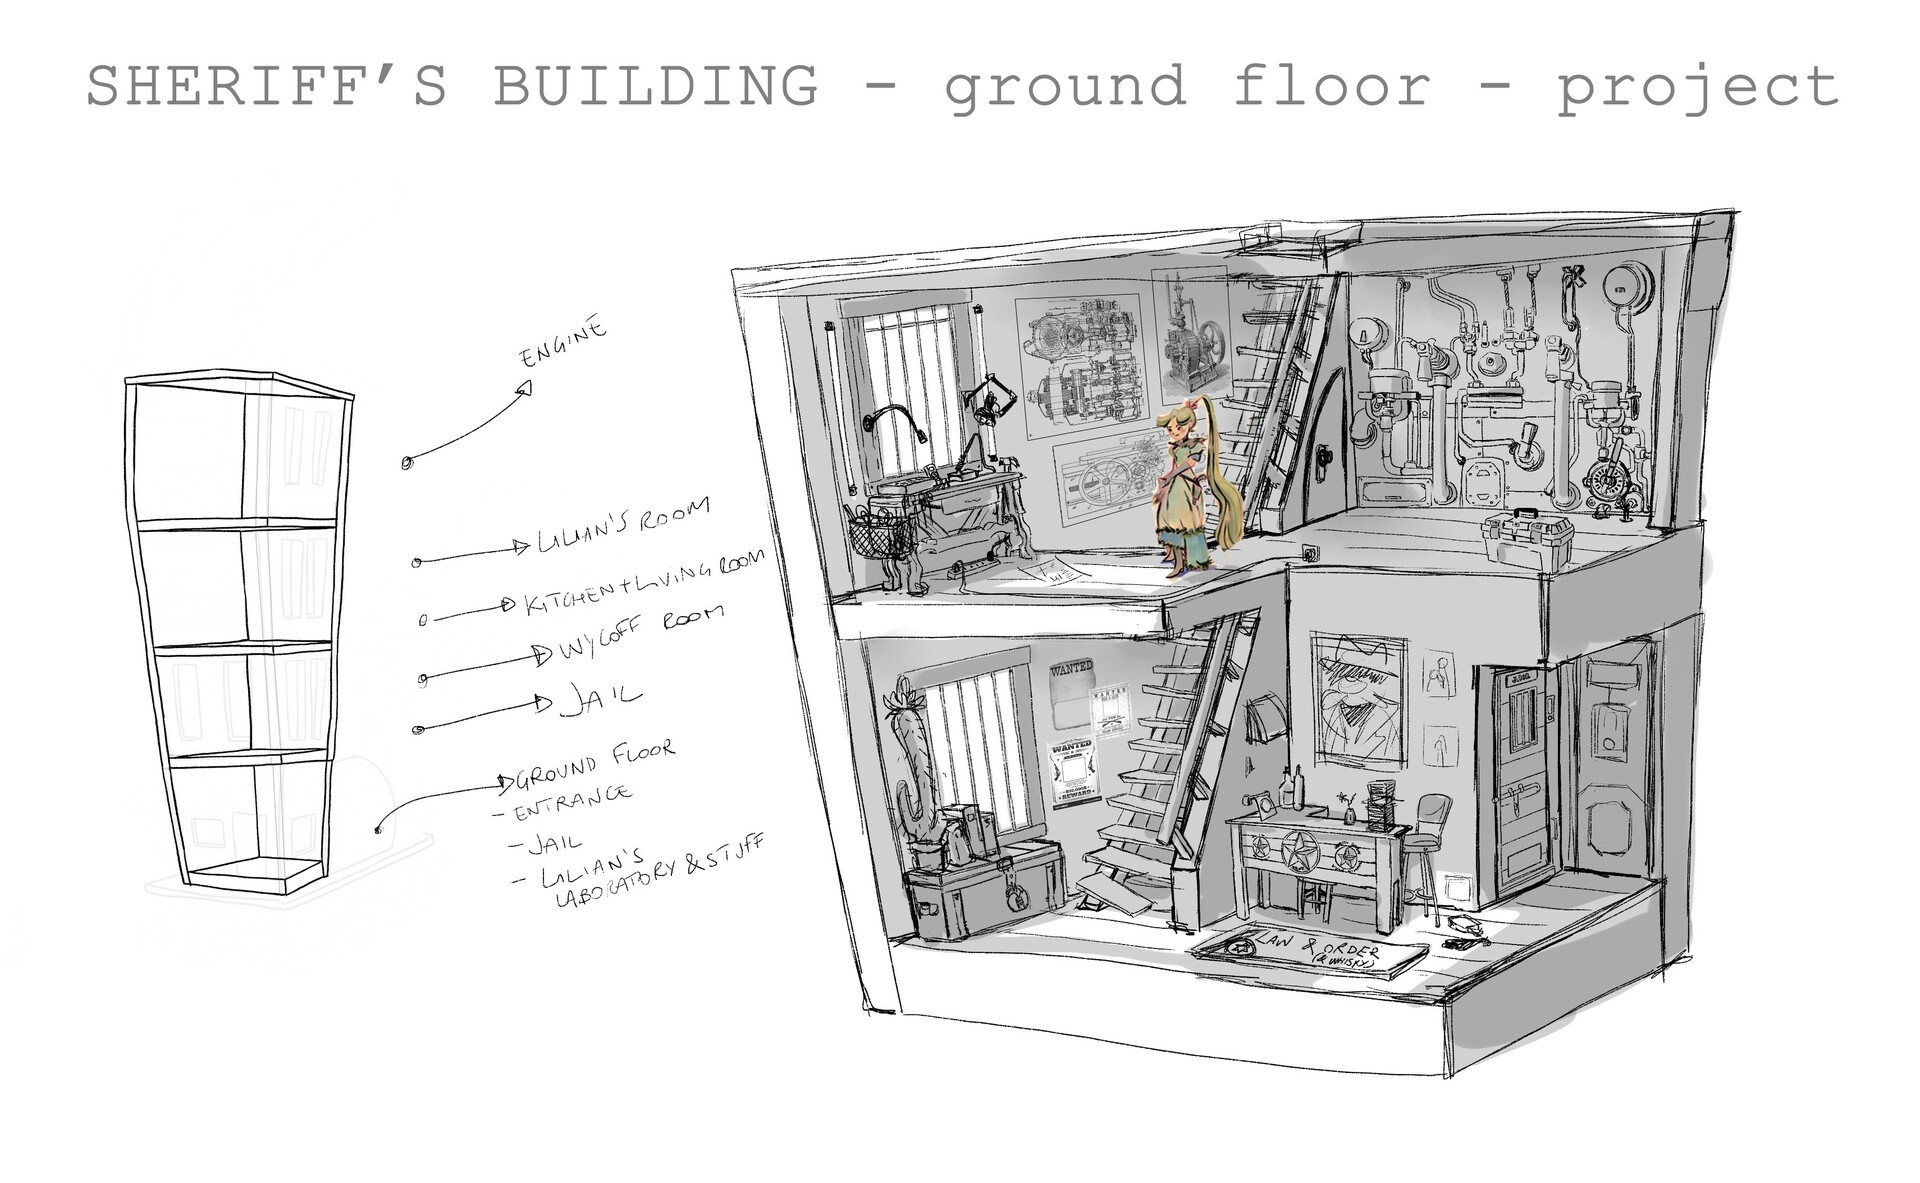 Plan of the floors and sketch of the Ground Floor